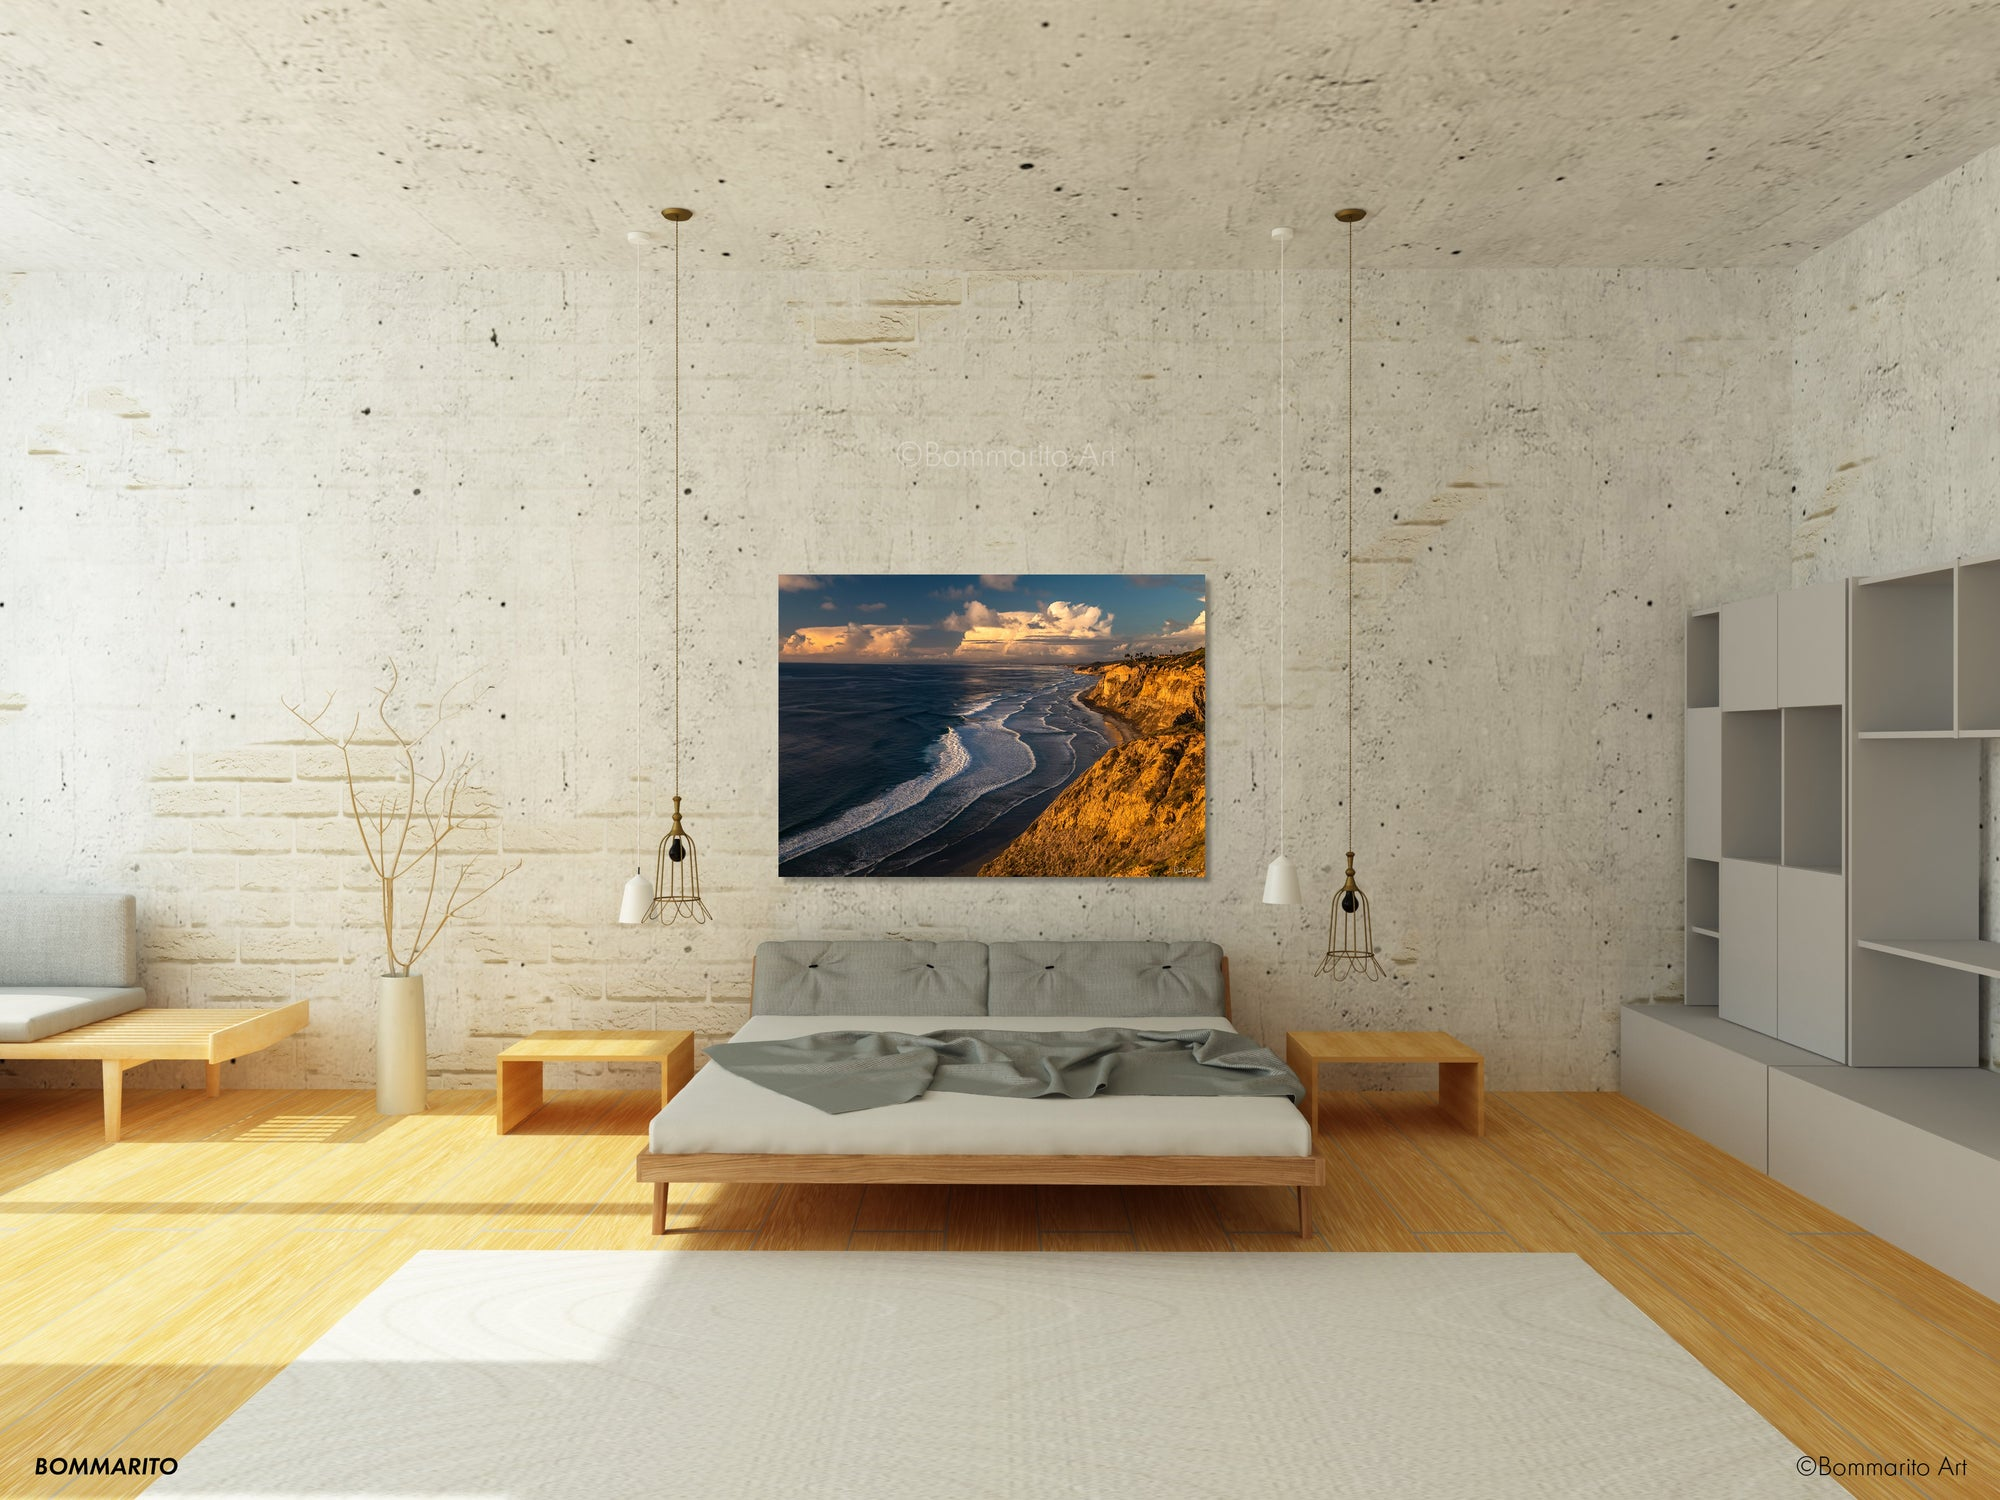 Black's Coastline - Bedroom